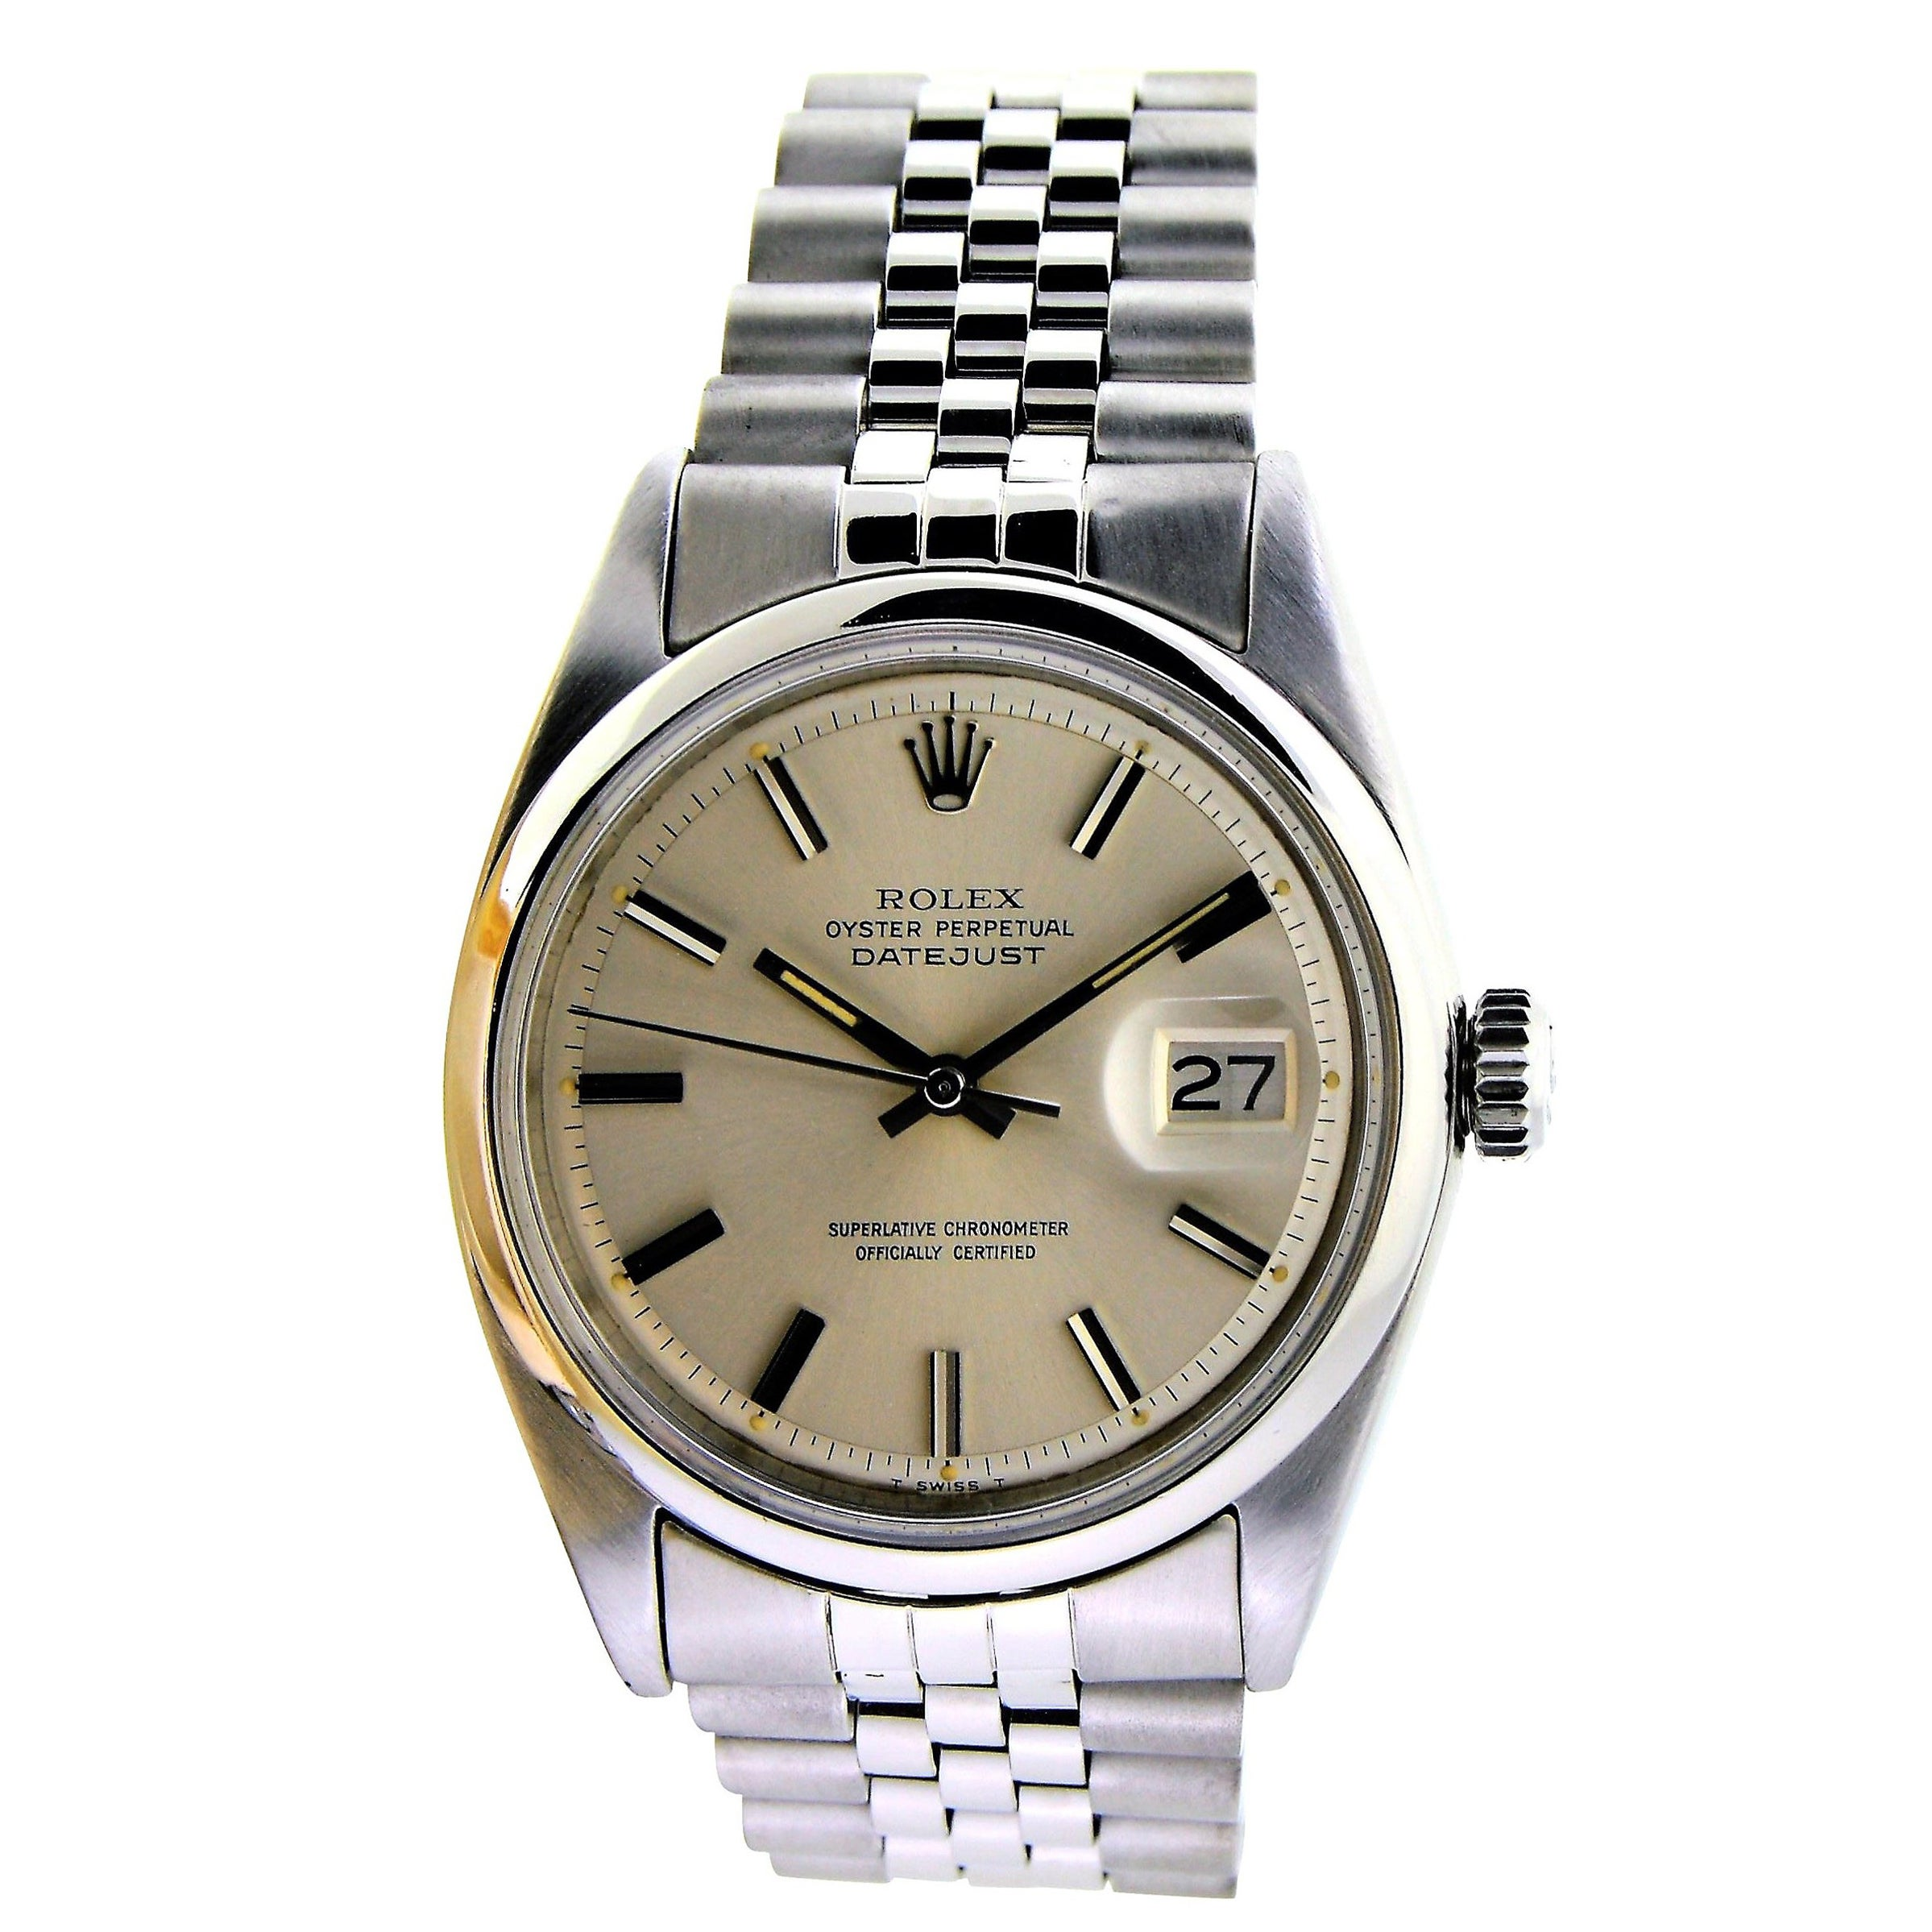 Rolex Stainless Steel Datejust Polished Bezel Watch, late 1960's